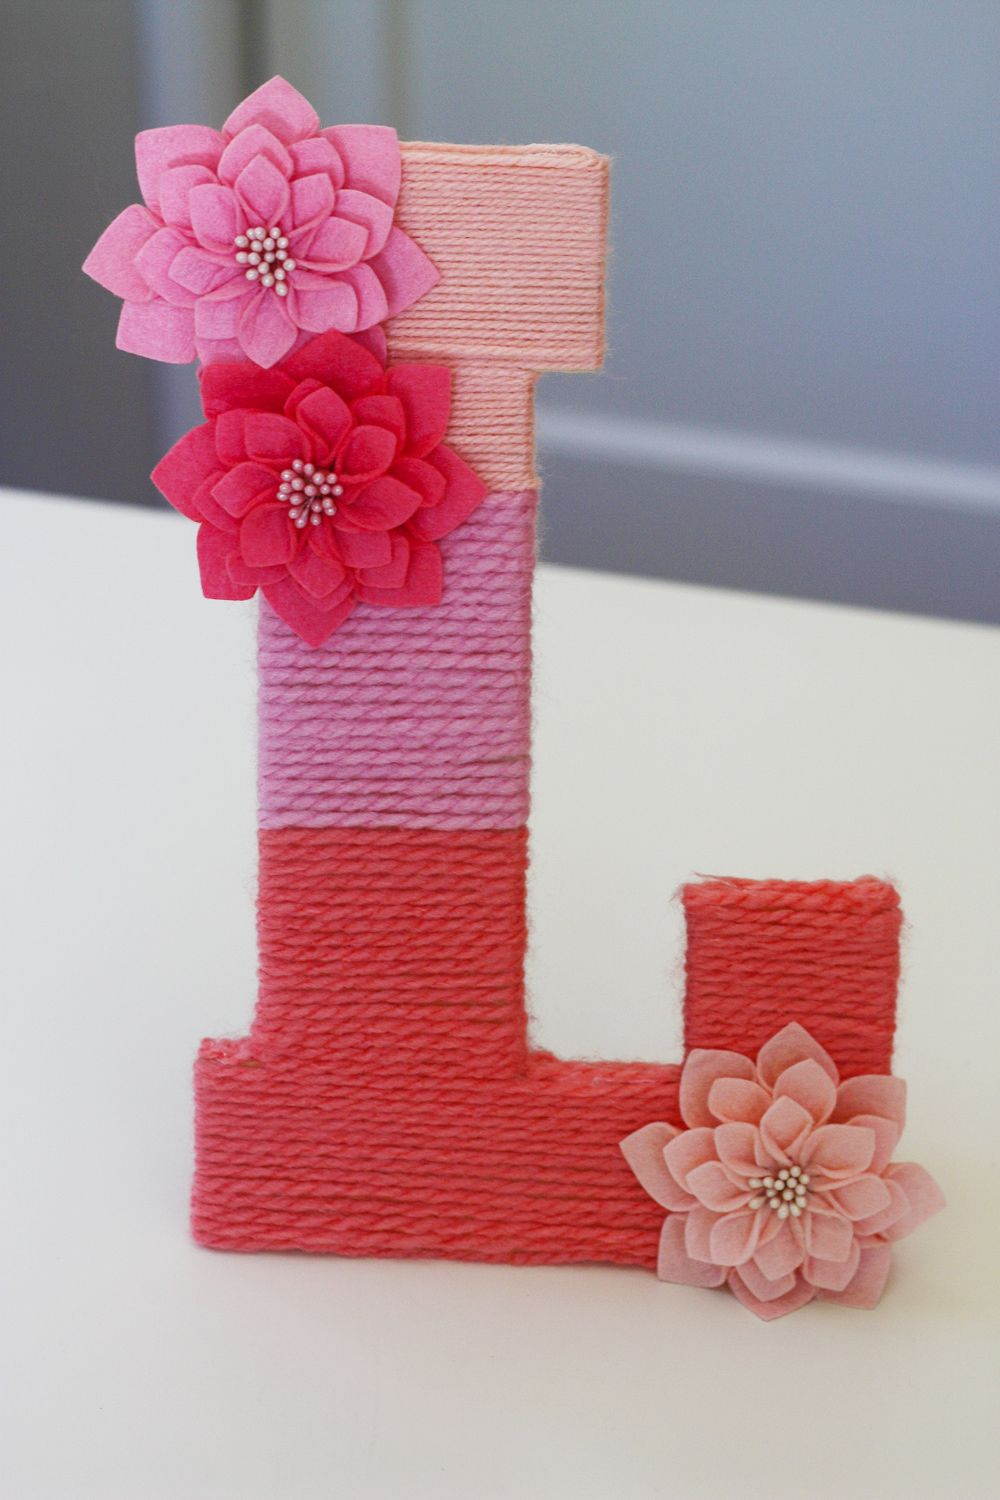 Make An Easy Yarn Wrapped Ombre Monogrammed Letter Crafty